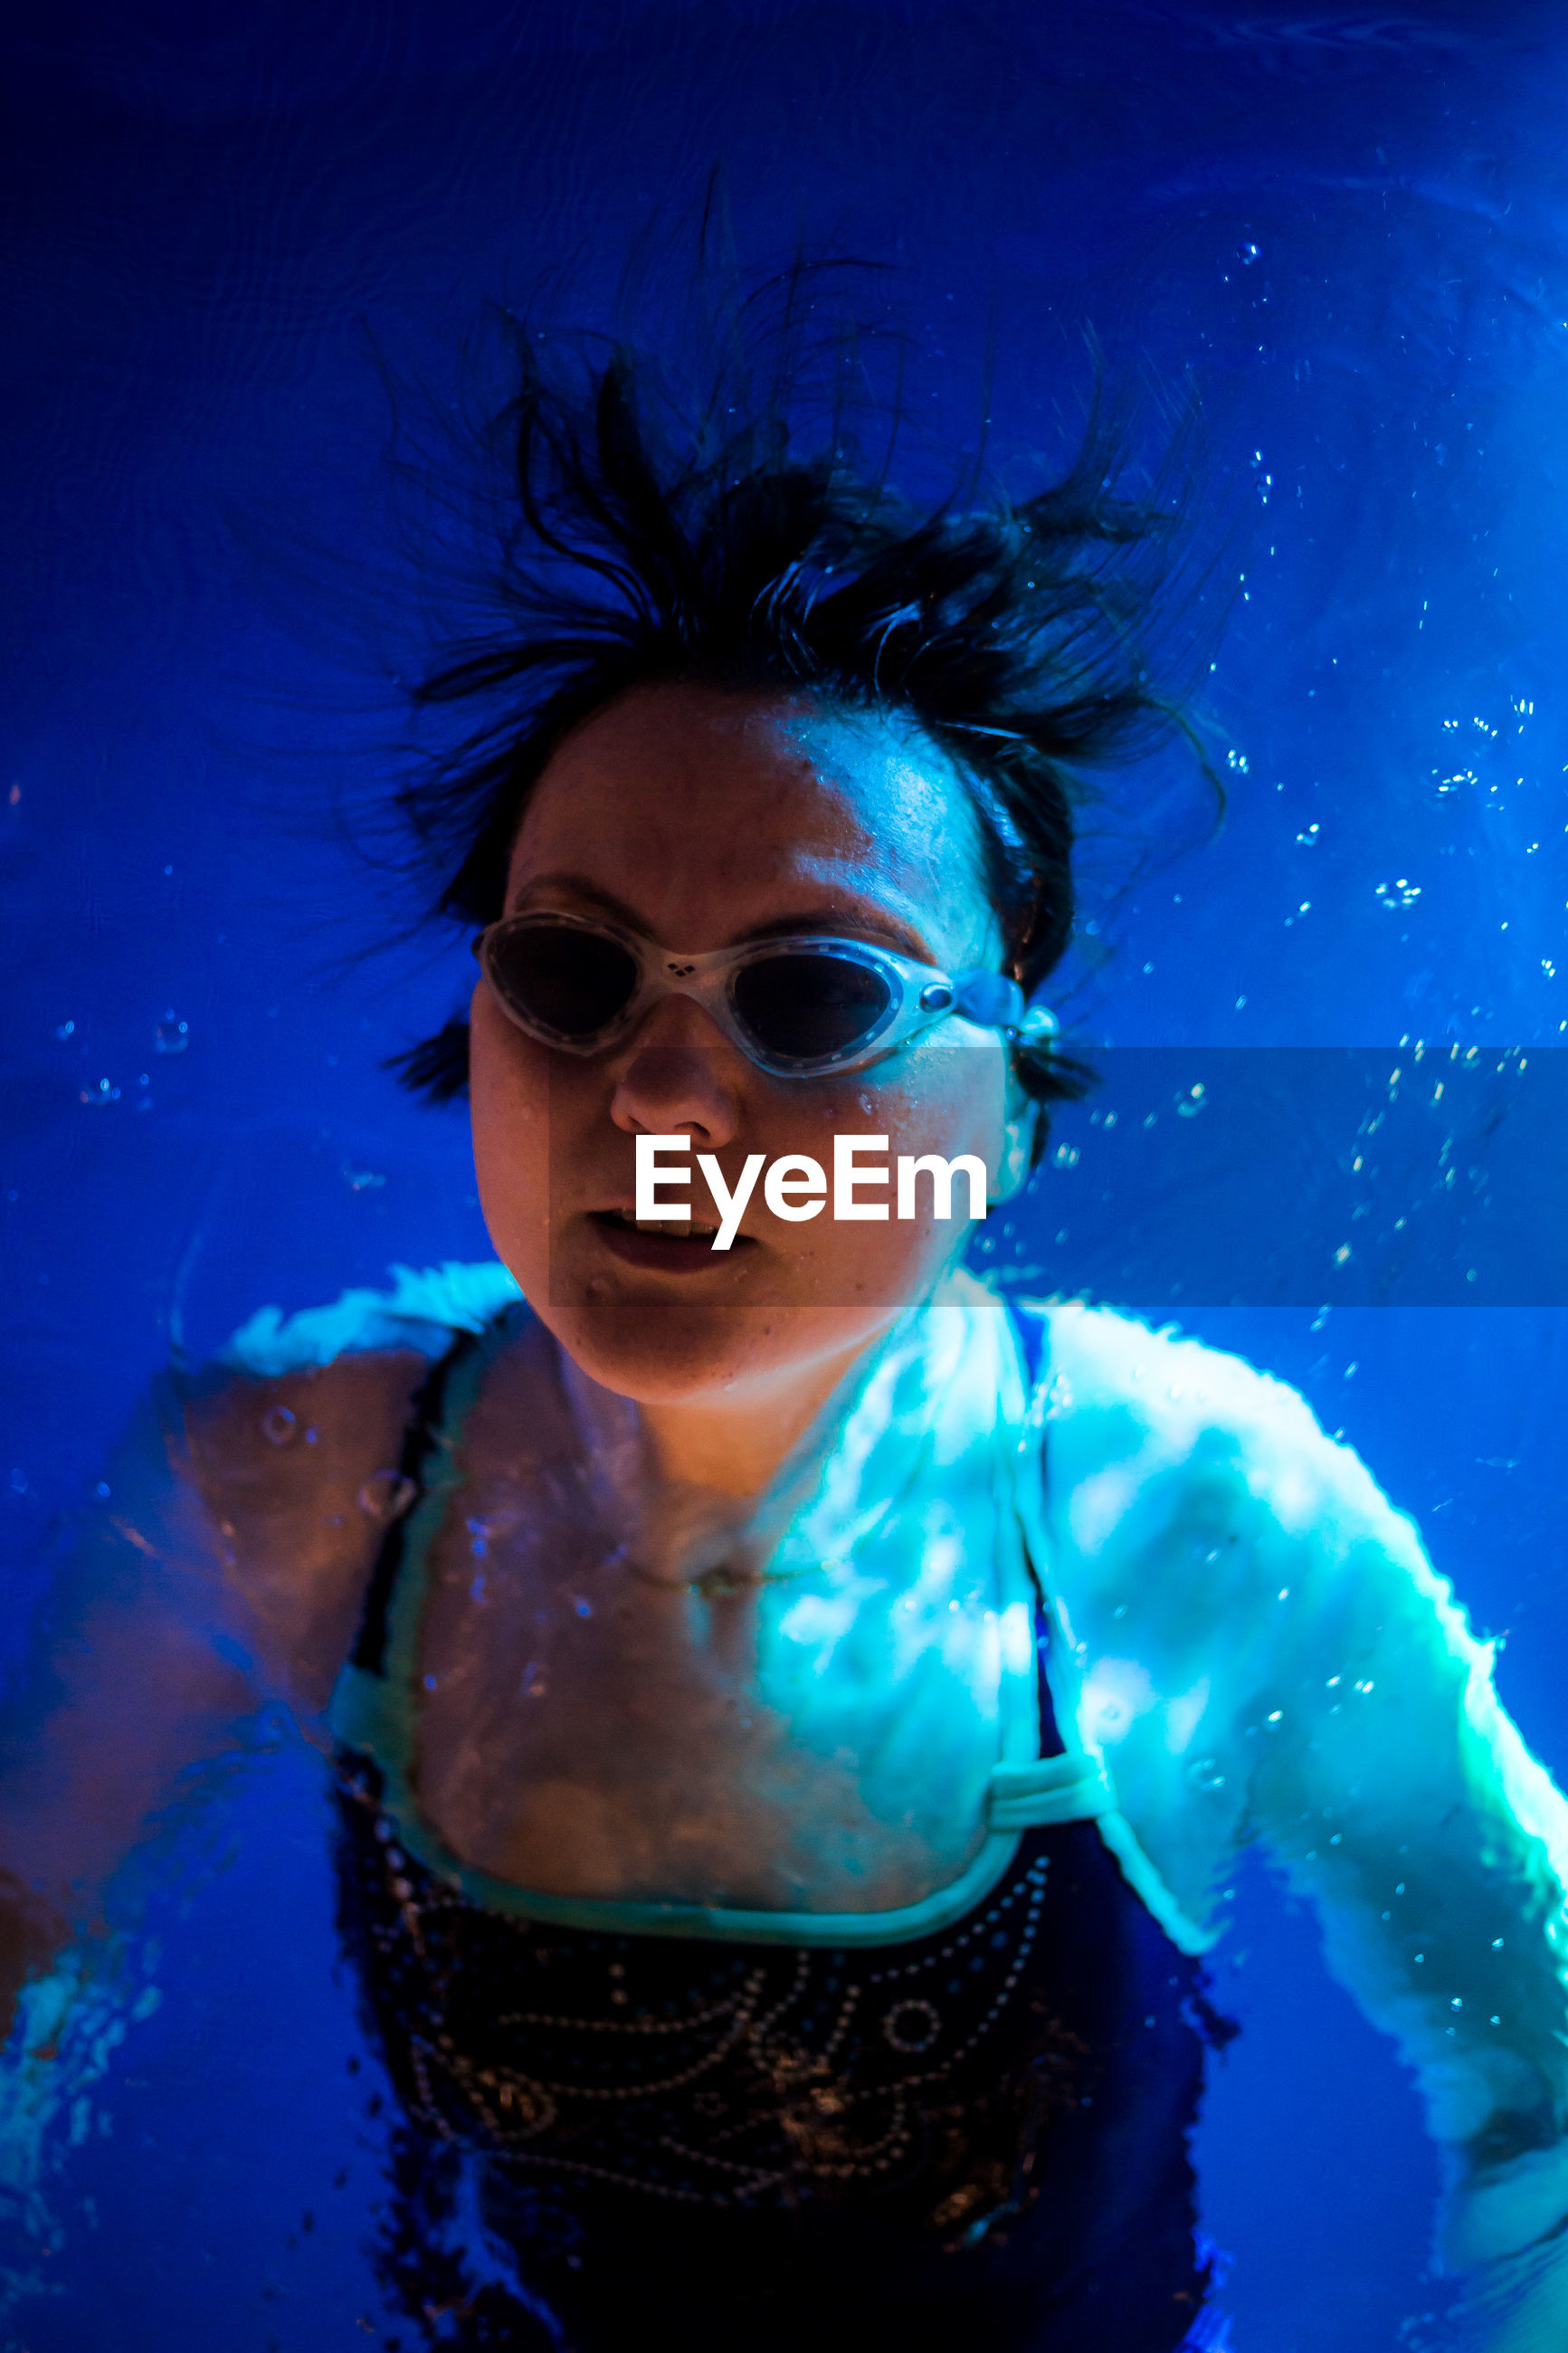 PORTRAIT OF YOUNG WOMAN SWIMMING UNDERWATER IN POOL